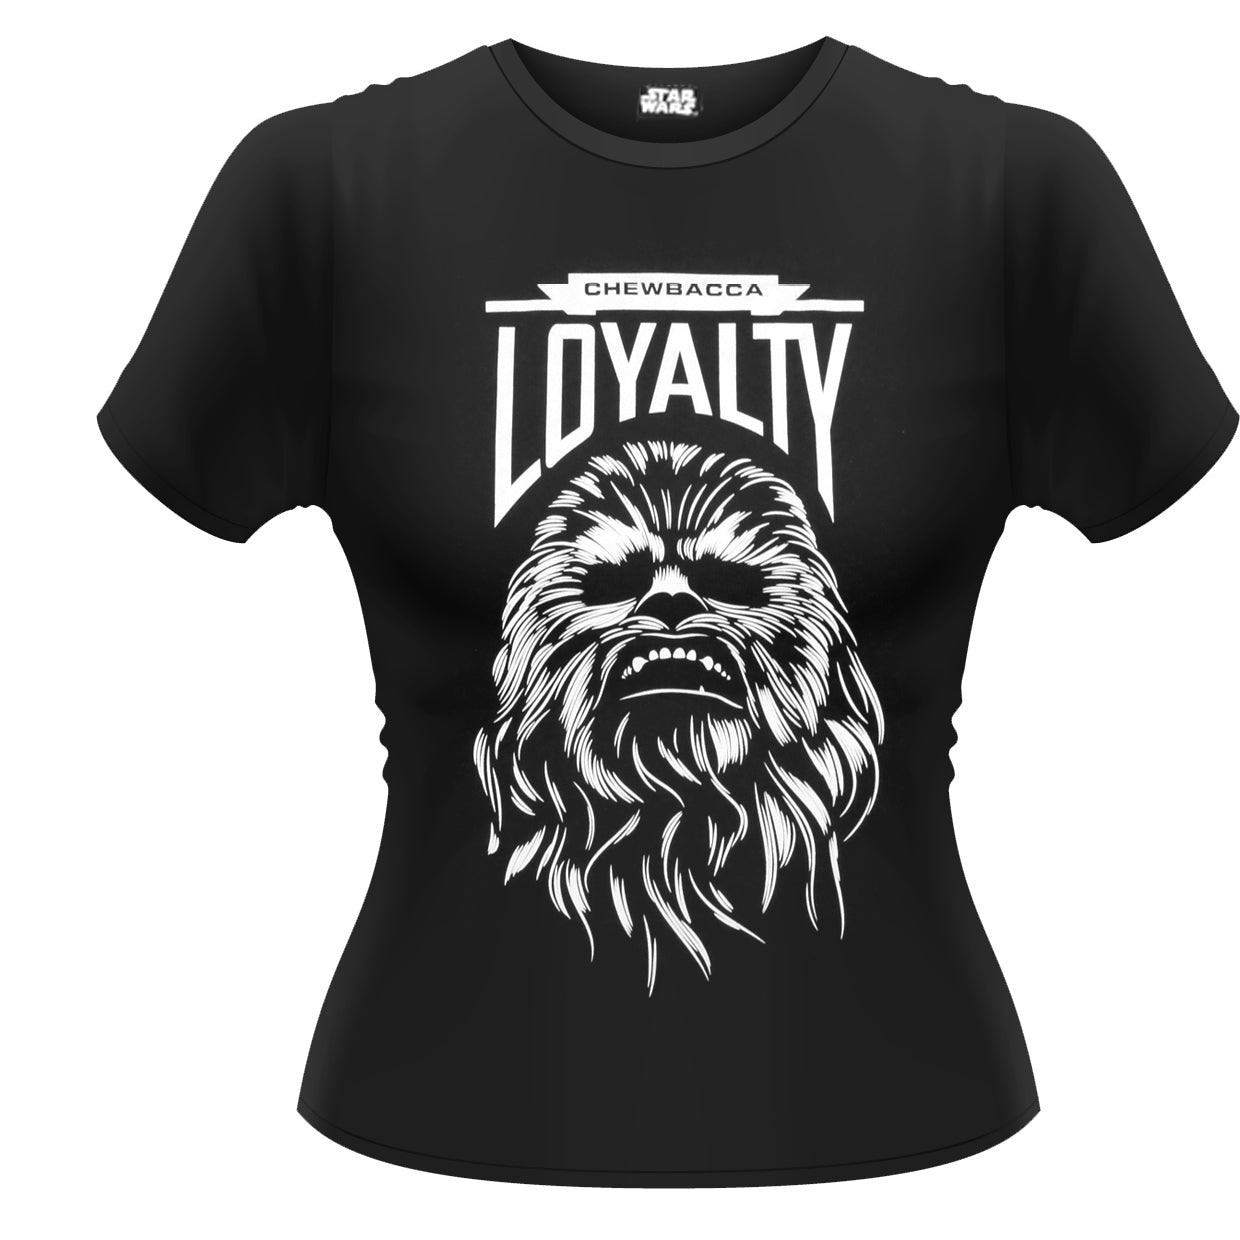 T-Shirt - Star Wars - The Force Awakens - Chewbacca Loyalty